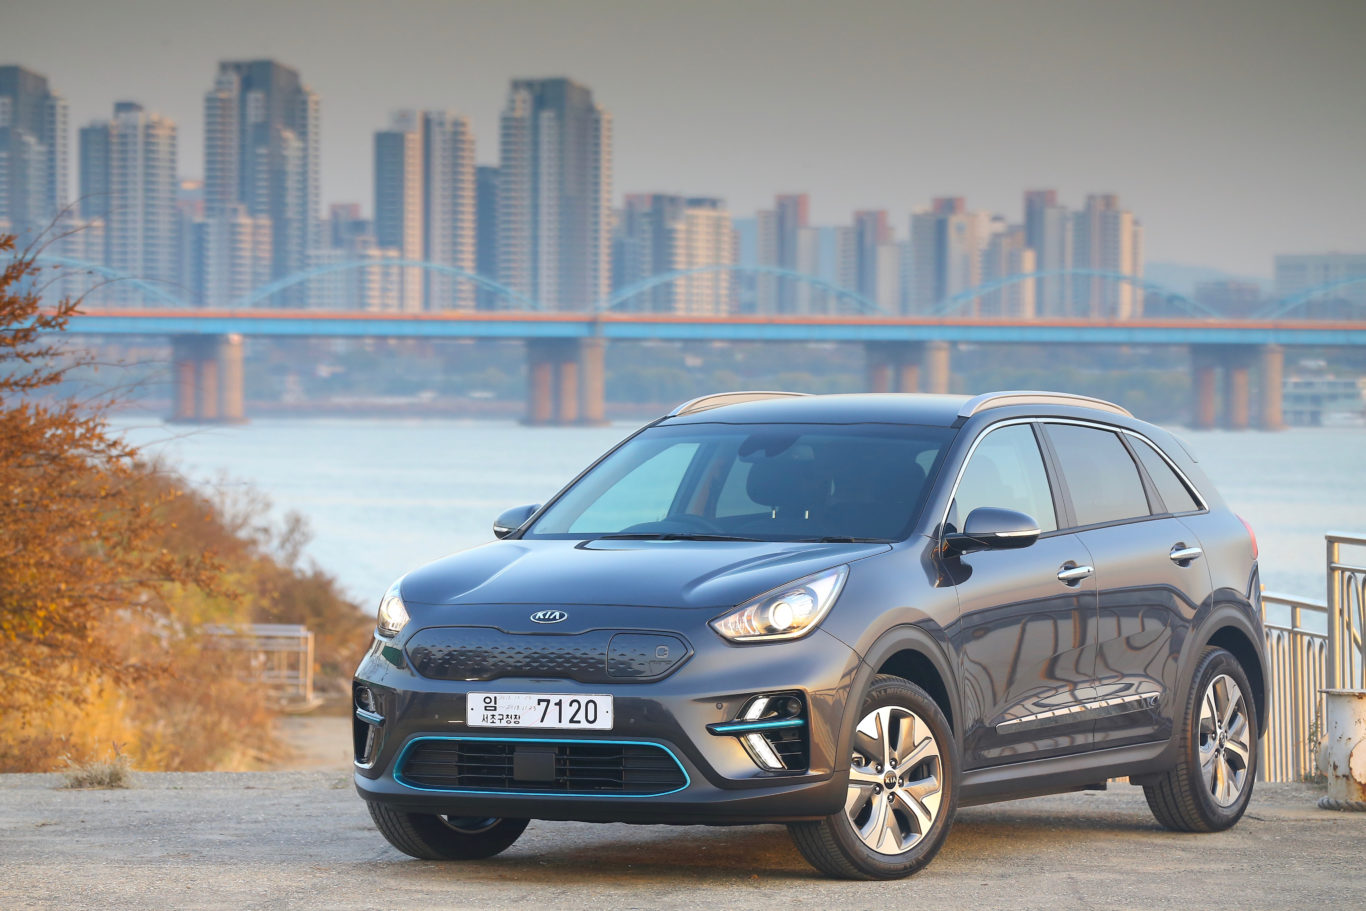 The e-Niro can hit 60mph in under seven seconds